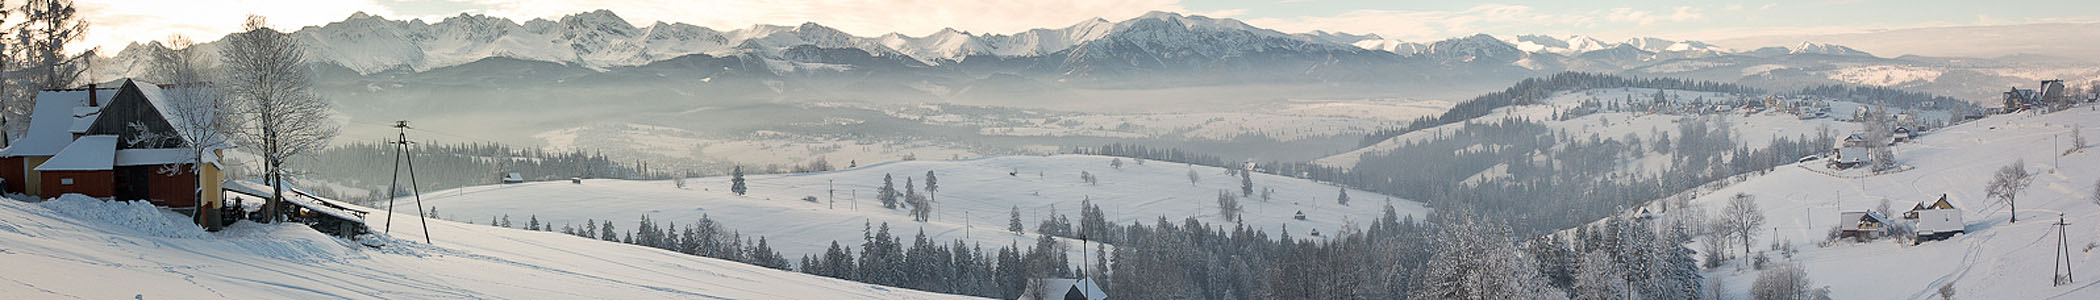 Most Popular Countries >> Tatra National Park (Poland) – Travel guide at Wikivoyage